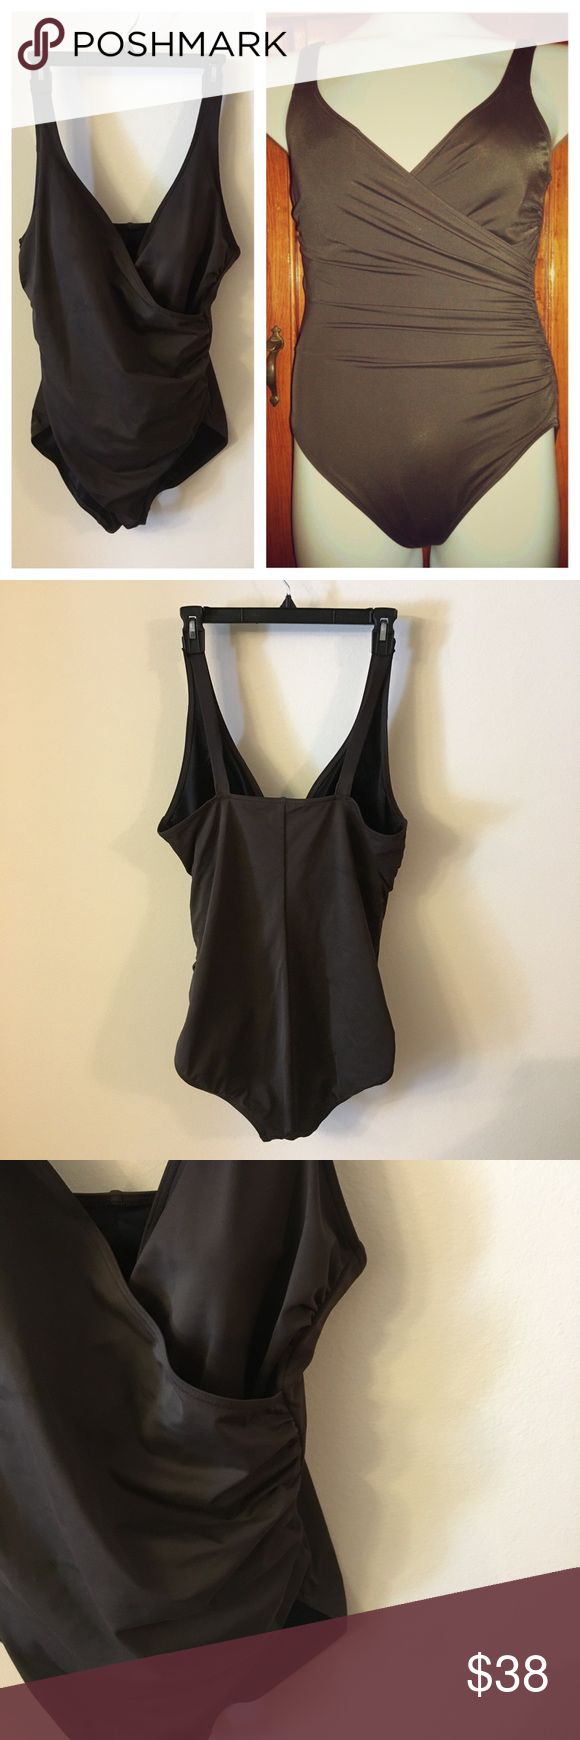 Lands' End Brown 1 Piece Swimming Suit size 16 📦Same day shipping if P.O. Open ❤ Measurements approximate. Descriptions accurate to the best of my knowledge  Lands' End dark brown 1-piece swimsuit. Size 16. Molded cups without any extra padding. Elastic under bra cups. There is some all over piling: please see close up photo. I'm not sure what use to be attached on the straps: not noticeable when worn. See close up photos of interior of all 4 straps. Smoke/pet free home. Flat unstretched…